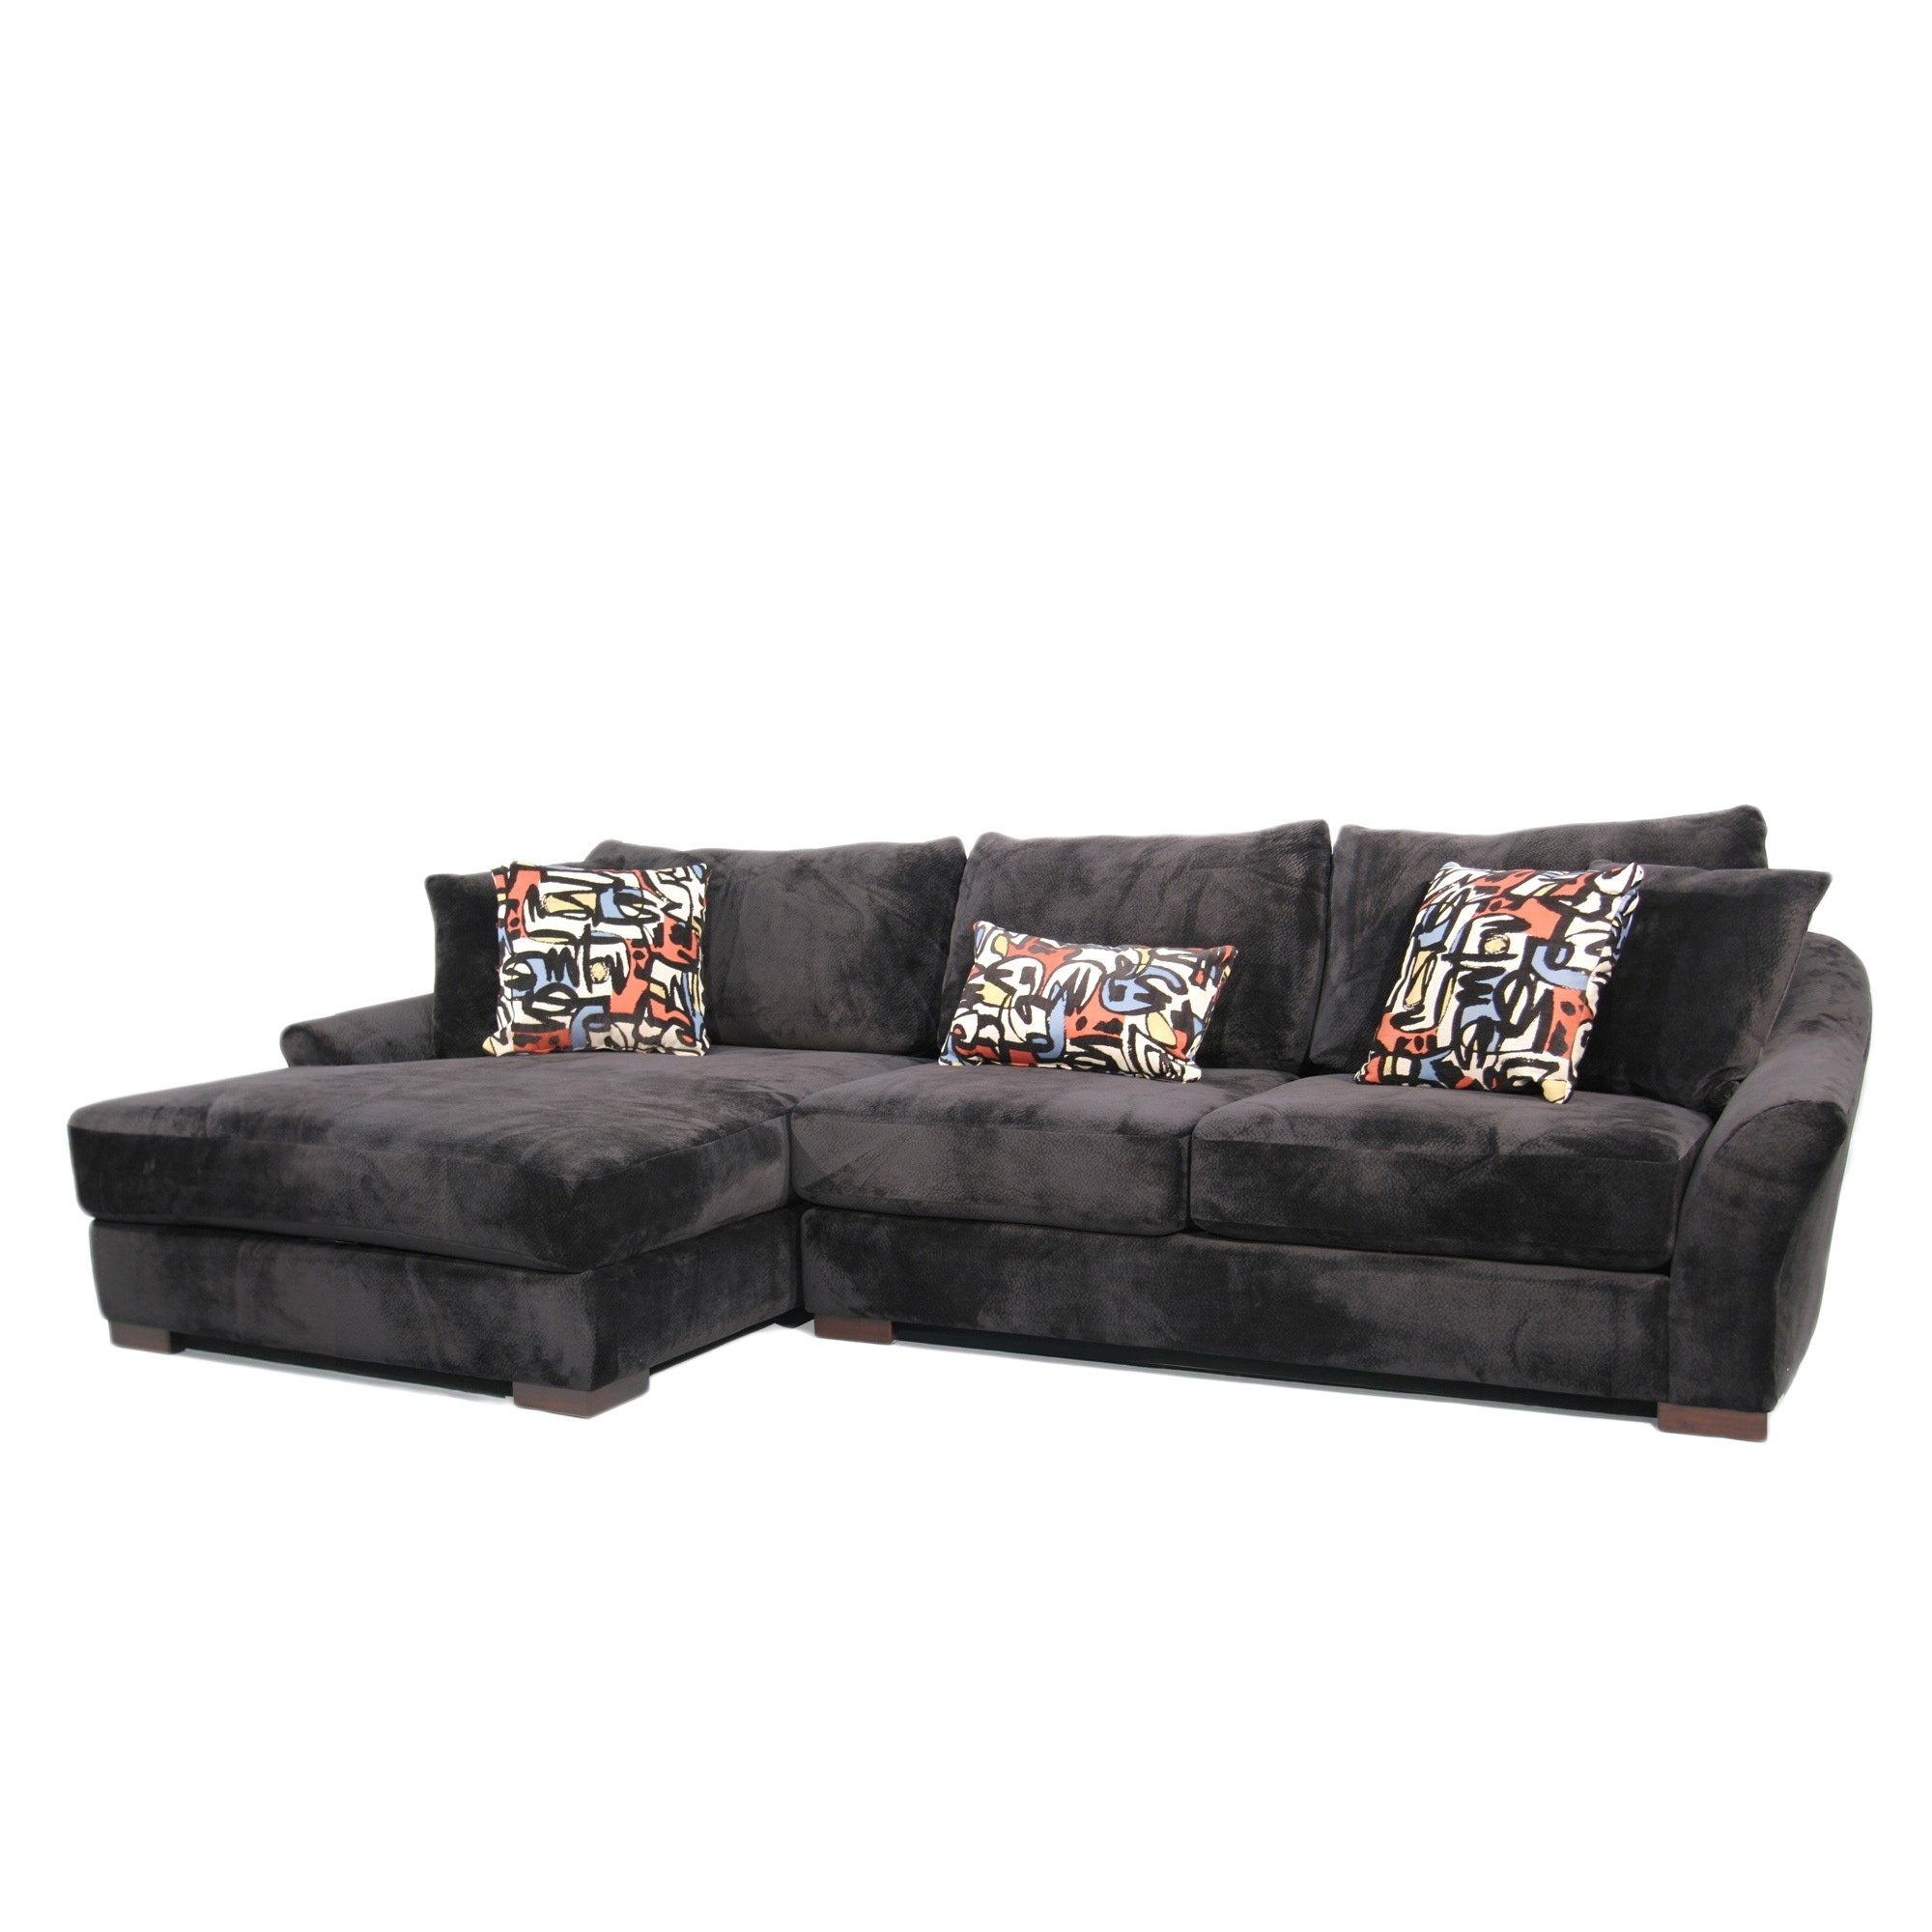 Shop Fairmont Designs Made To Order Audrey 3-Piece Ebony Sectional intended for Harper Foam 3 Piece Sectionals With Raf Chaise (Image 25 of 30)